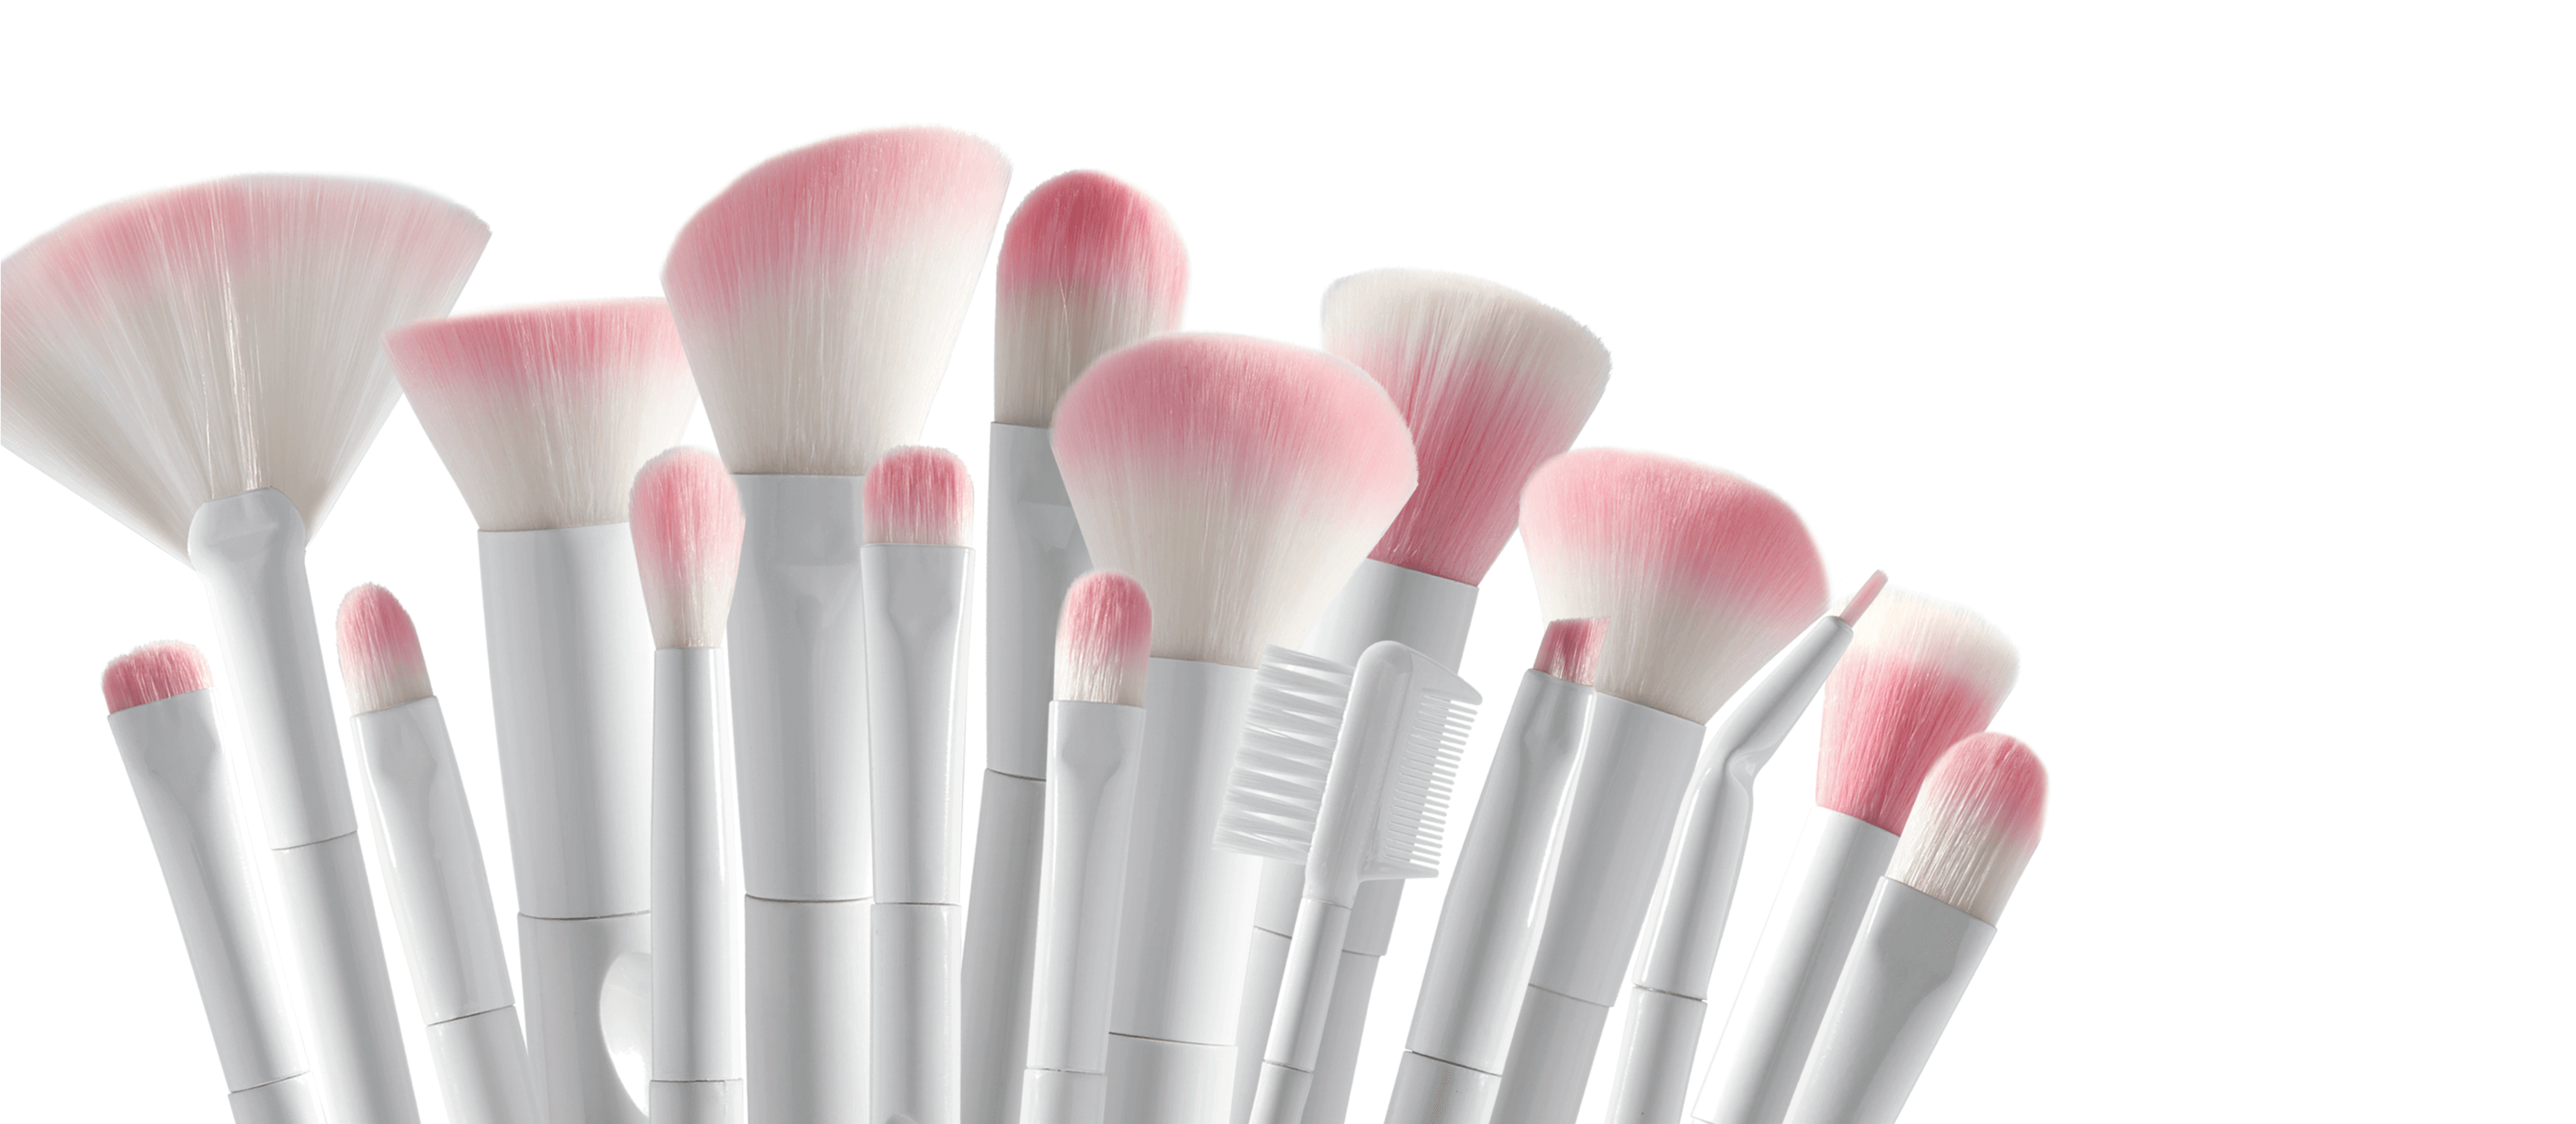 All Brushes